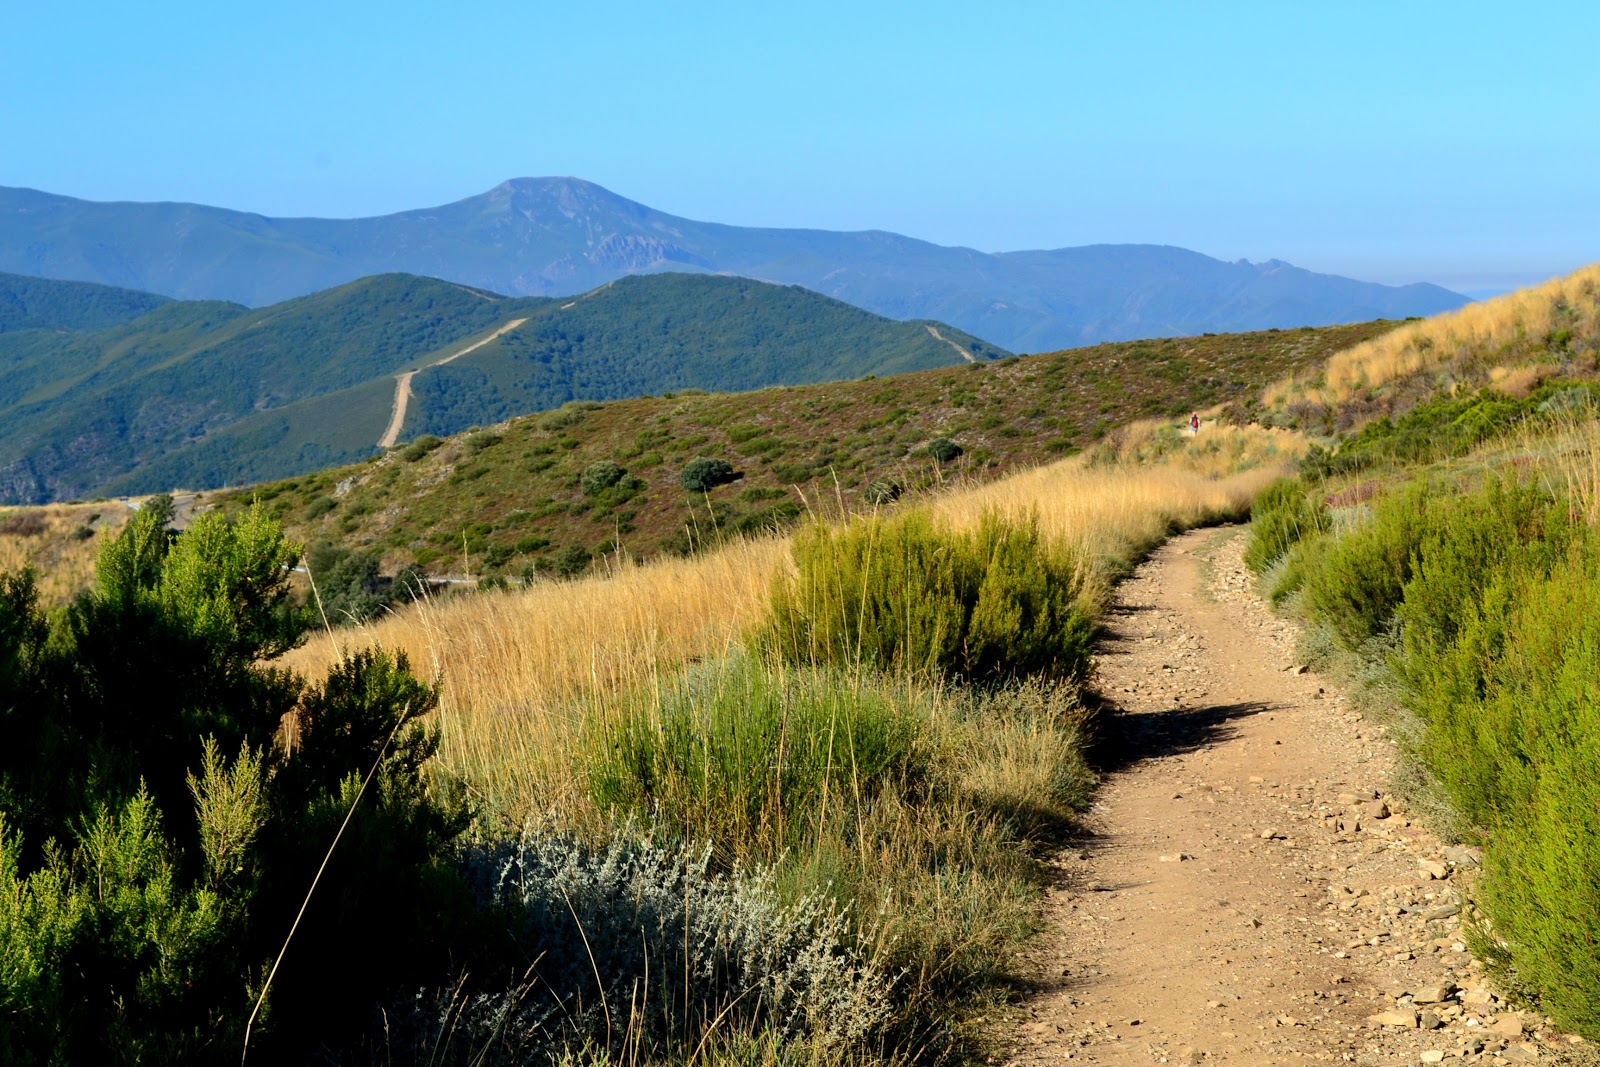 Along the Camino de Santiago. Photo: © EuroTravelogue. Unauthorized use is prohibited.